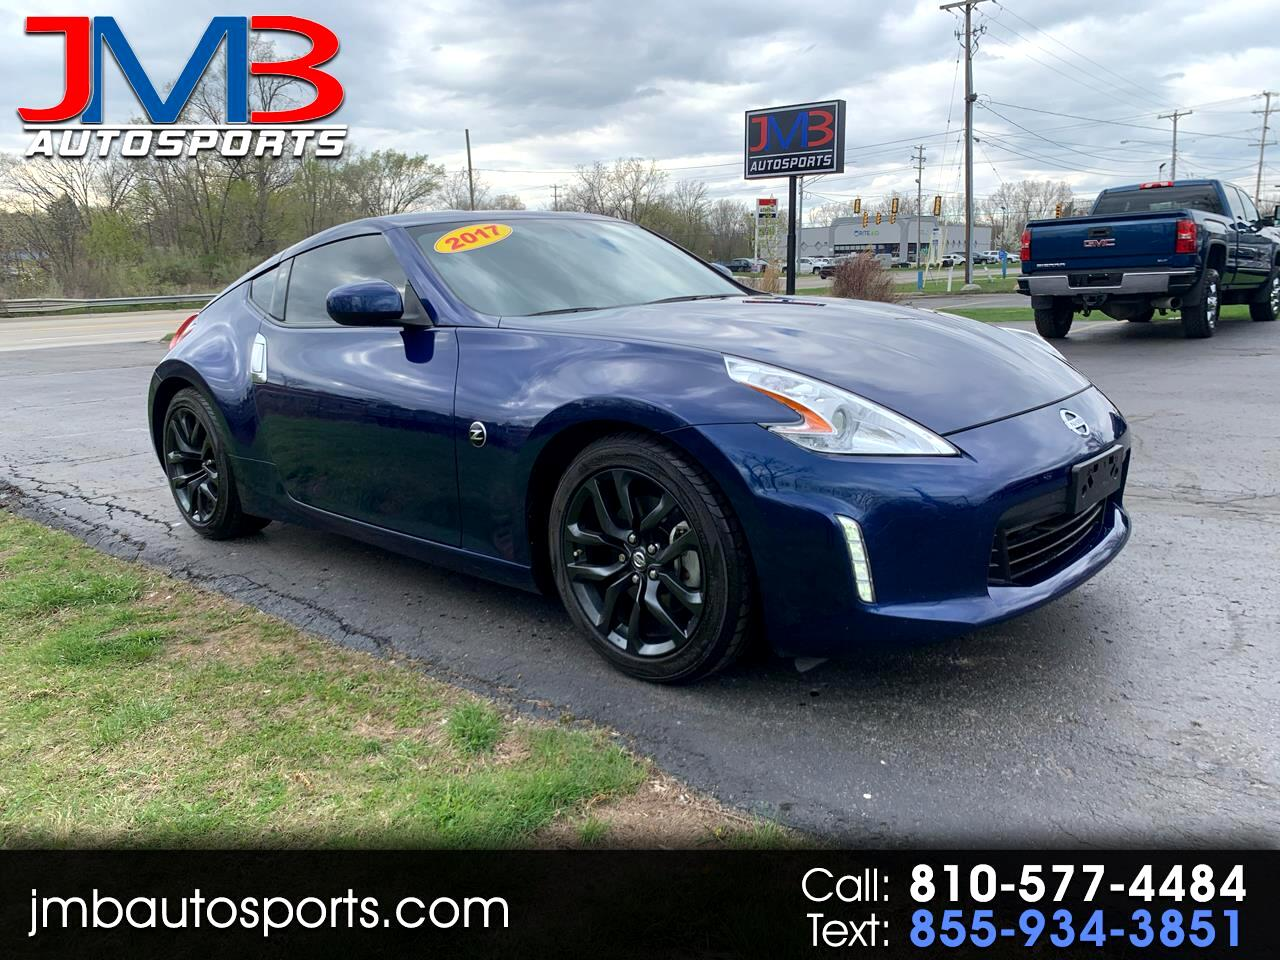 Nissan Z 370Z Coupe Touring 6MT 2017